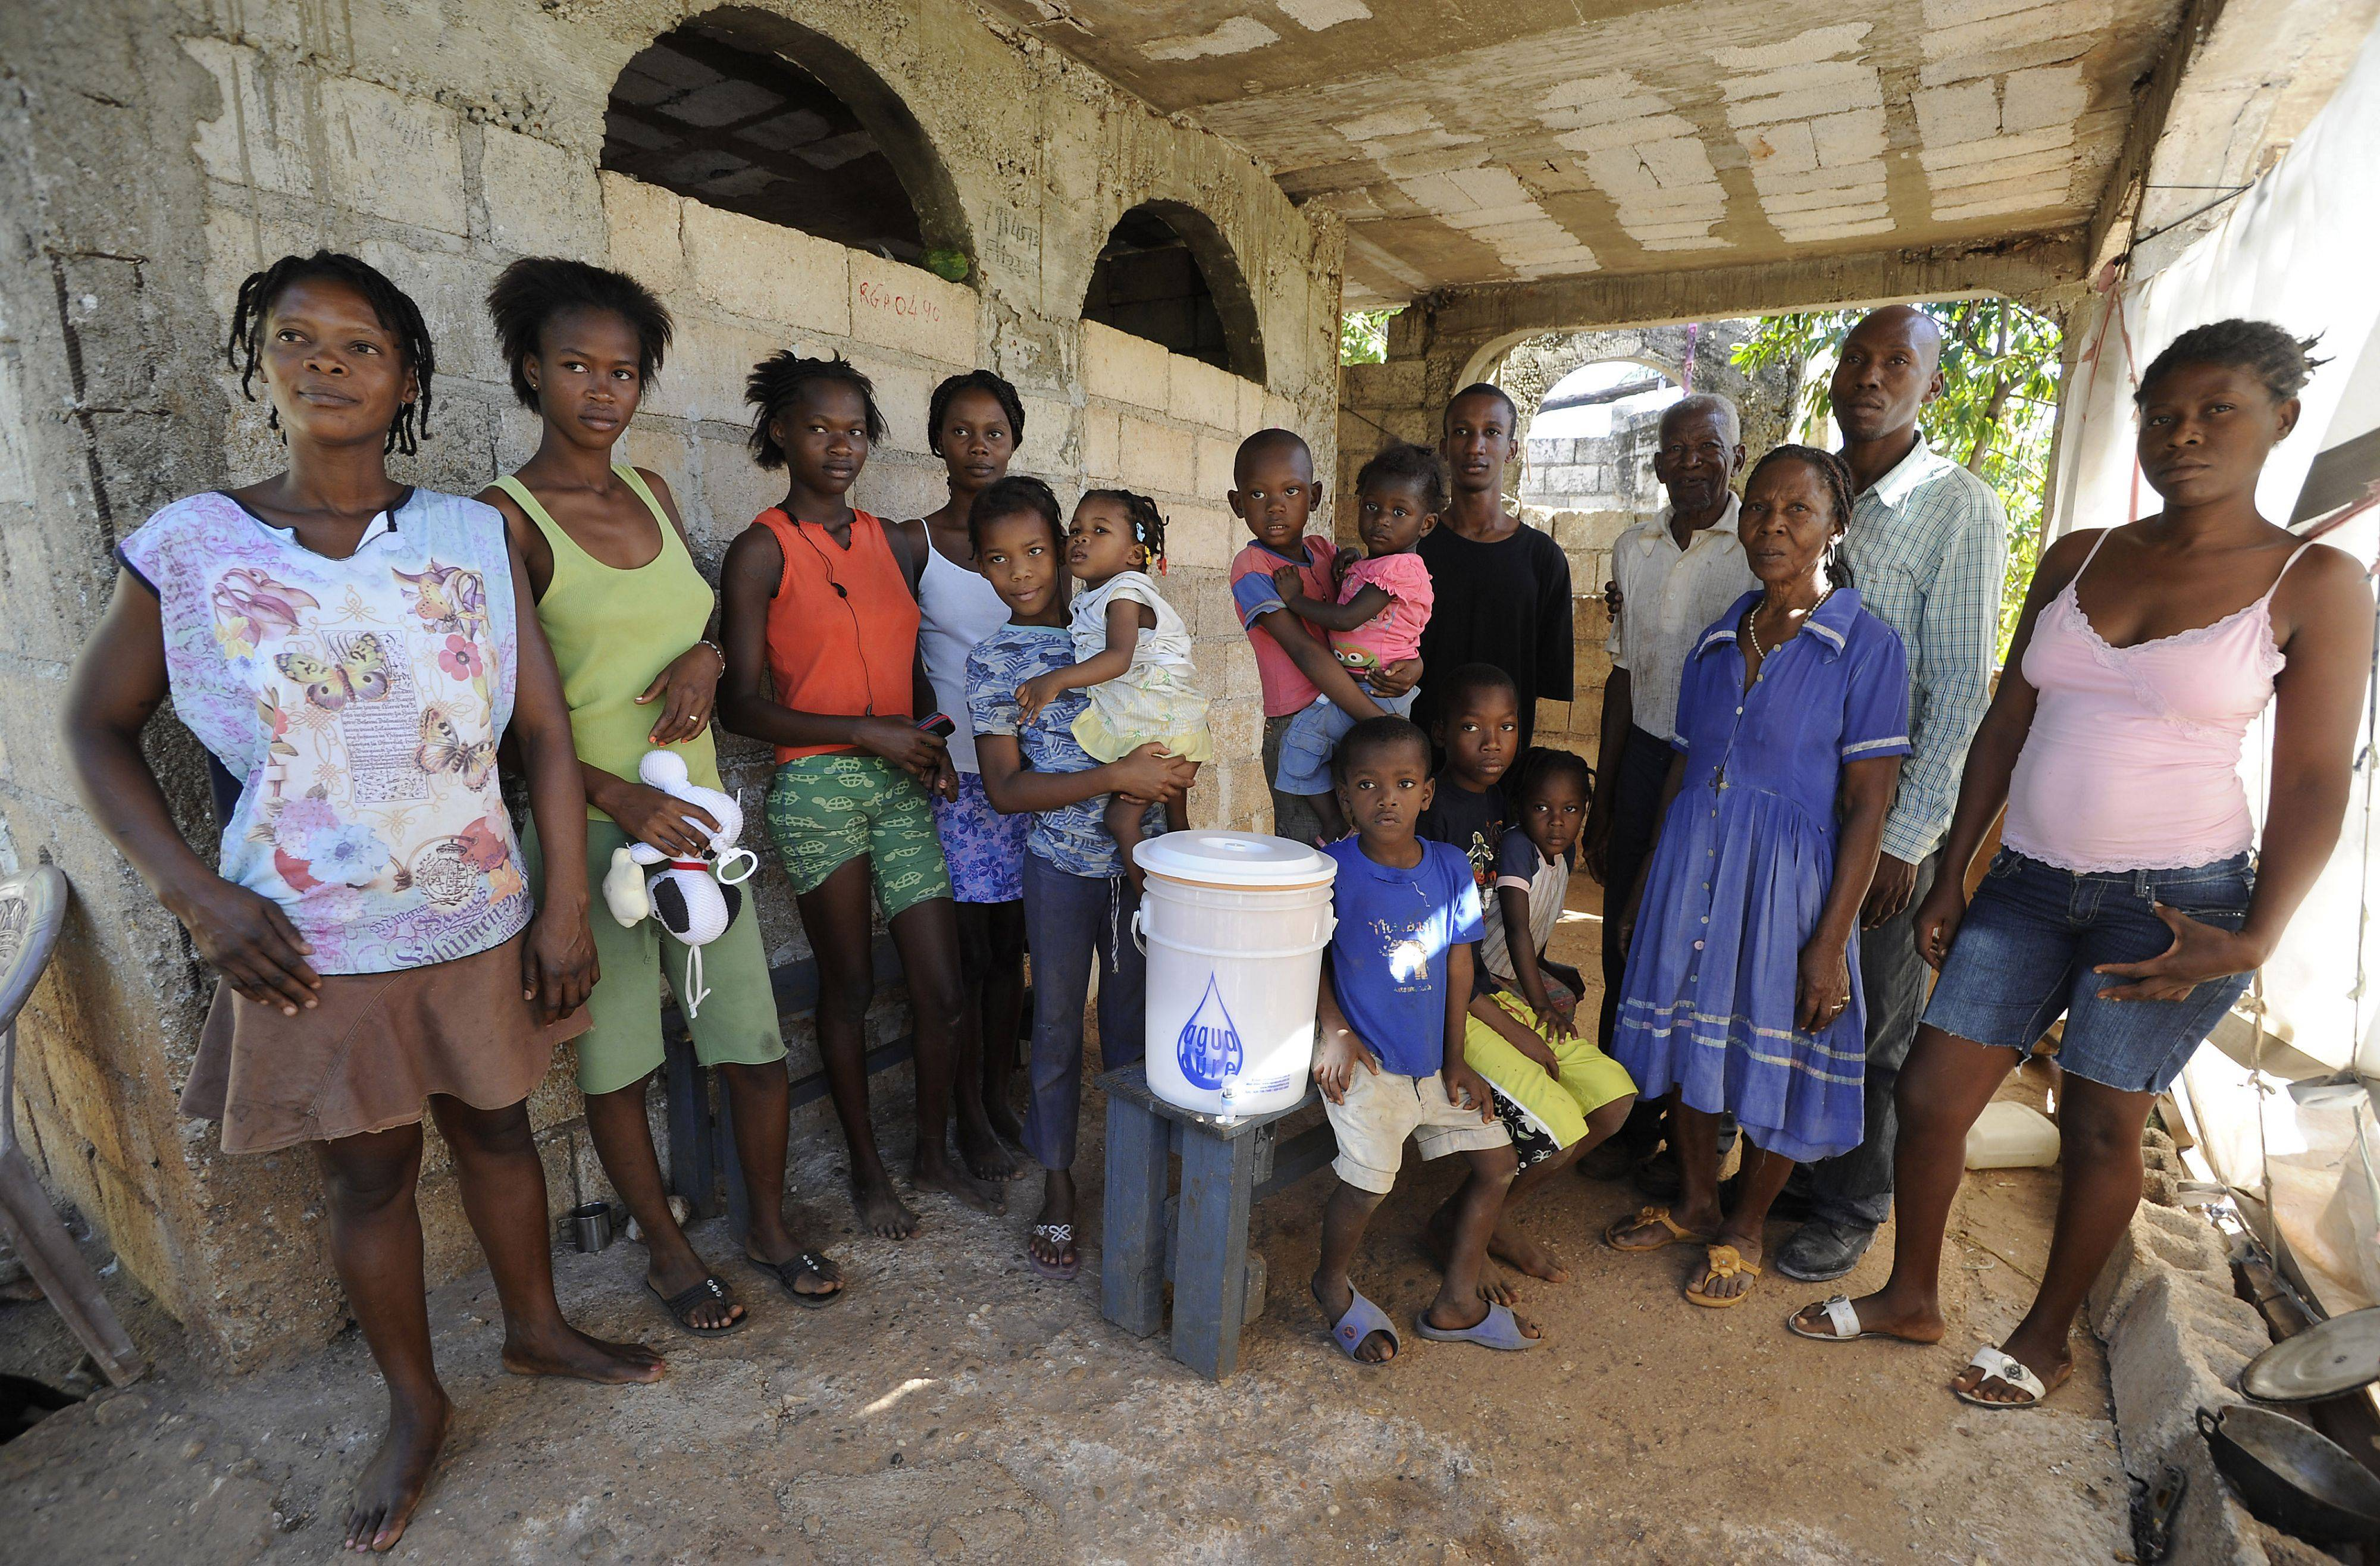 How to help the people of Haiti